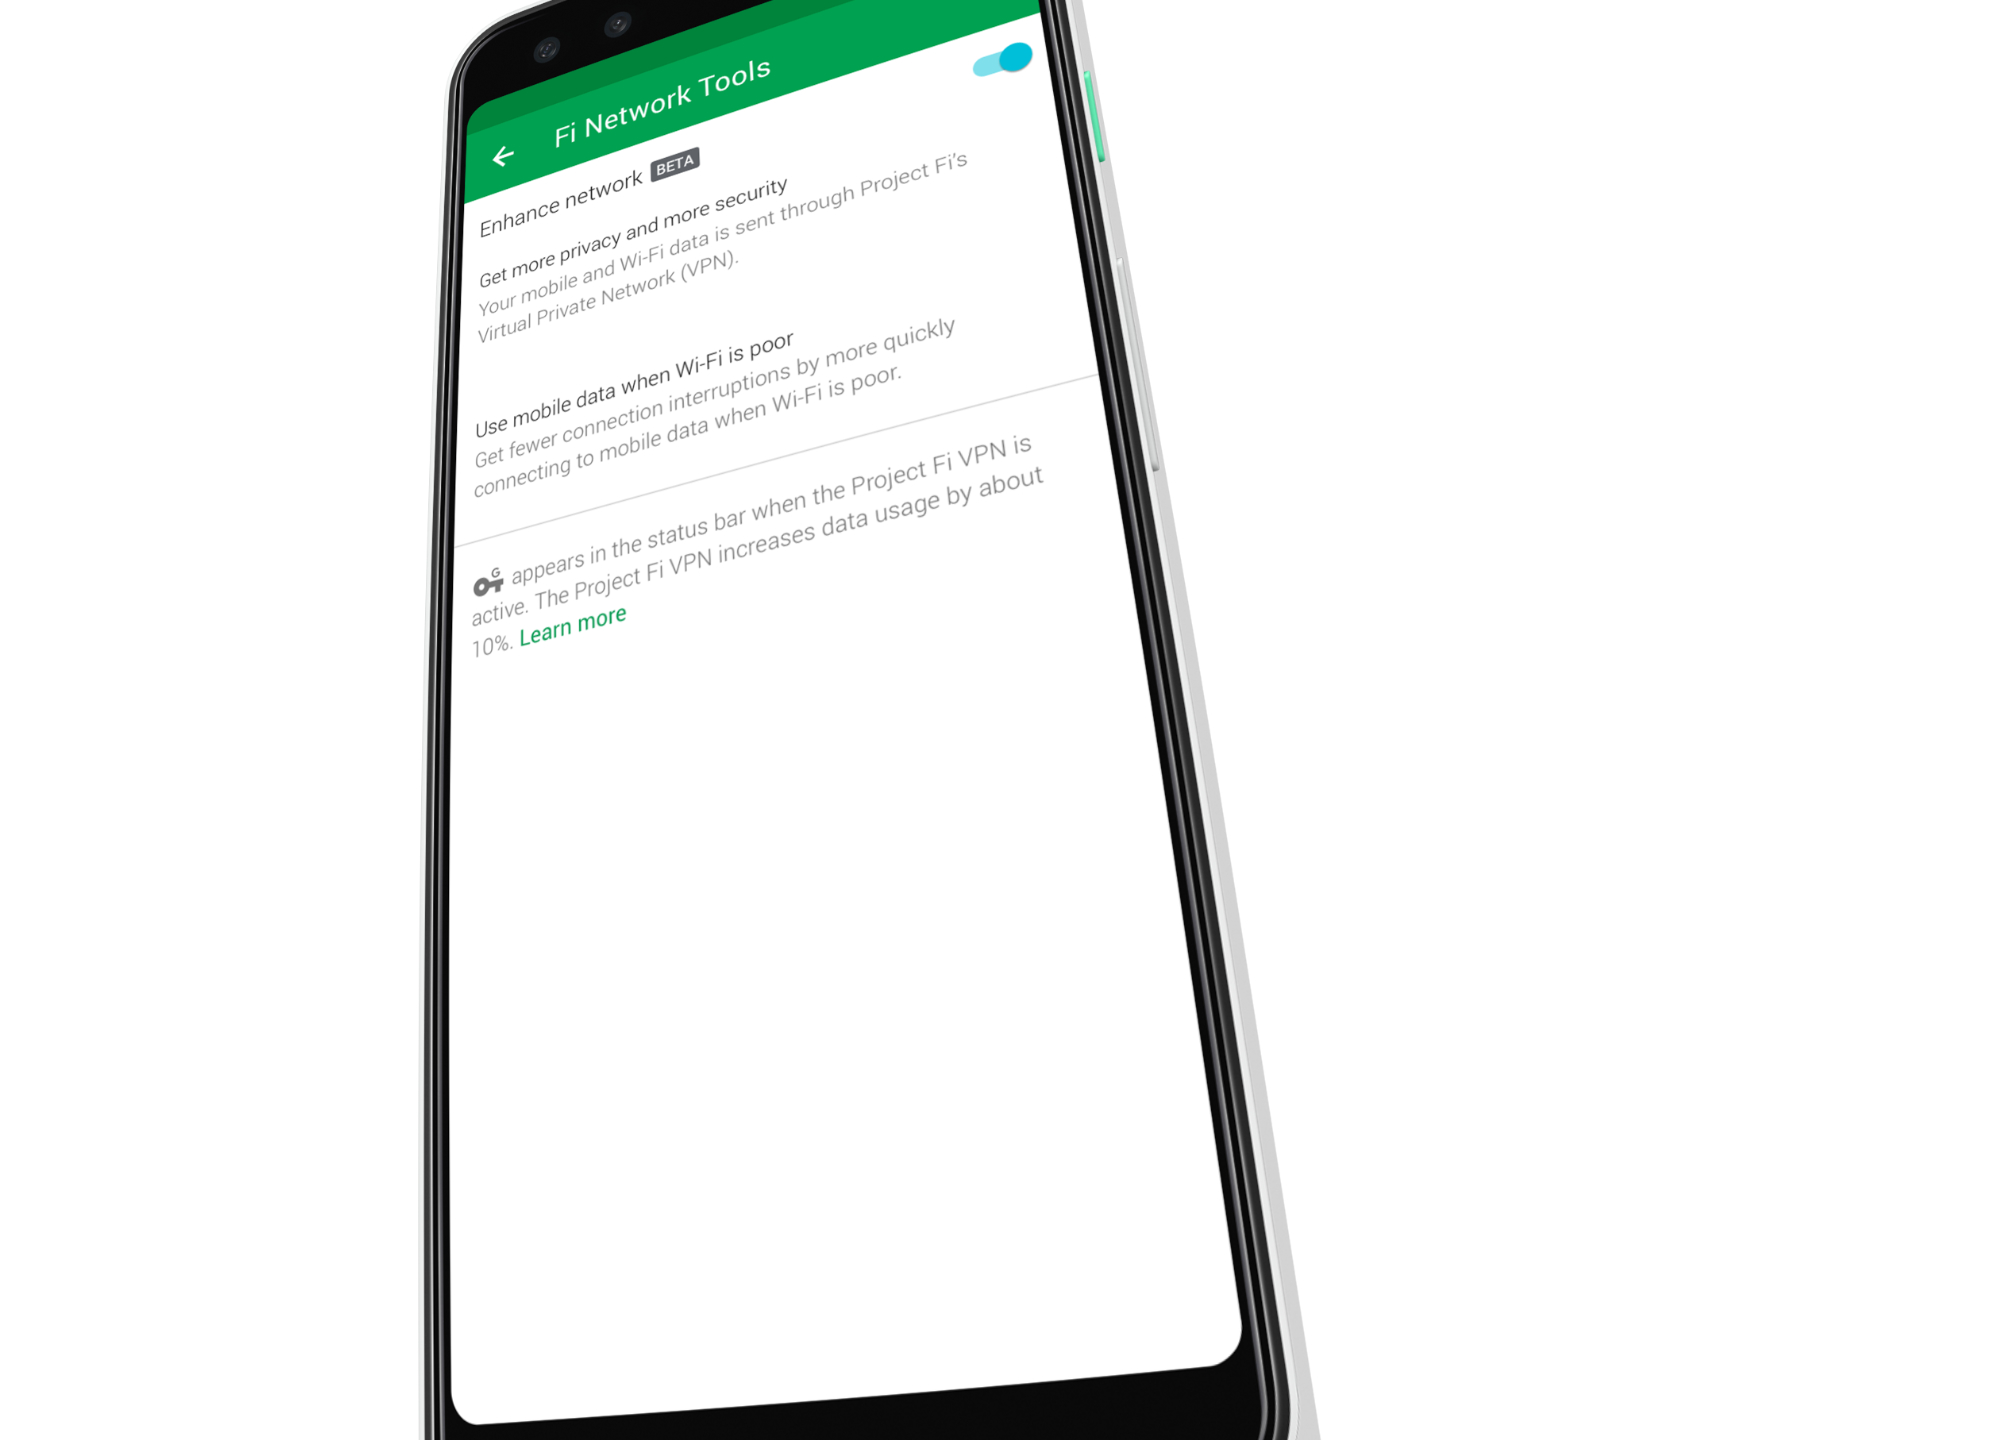 Google launches 'enhanced network' for Project Fi with VPN